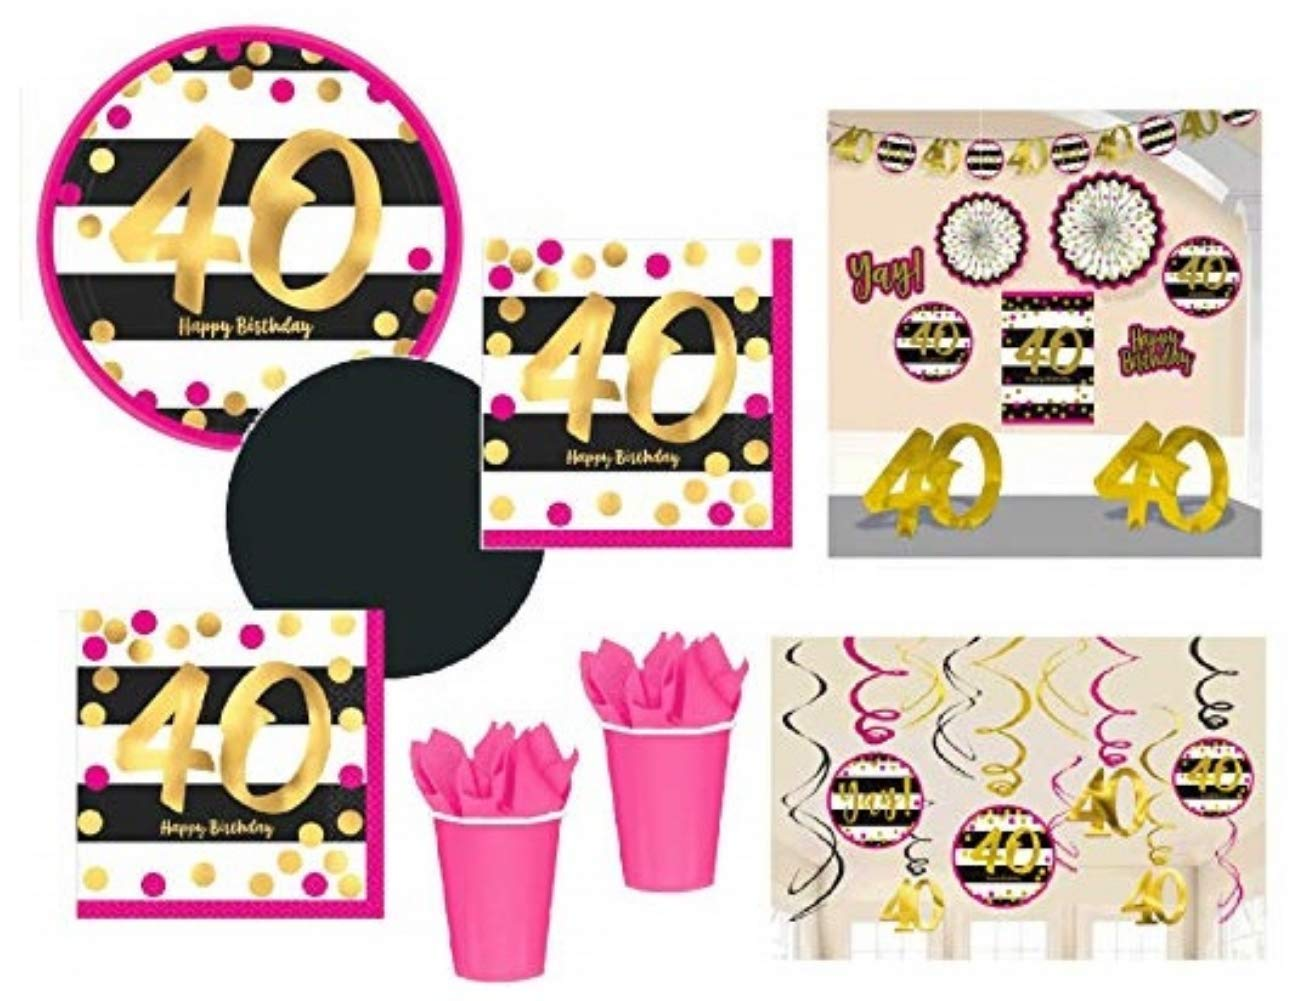 Buy FAKKOS Design 40th Birthday Decorations And Party Supplies In Pink Gold Black Foil For 24 Guests Includes Plates Cups Napkins Deluxe Kit